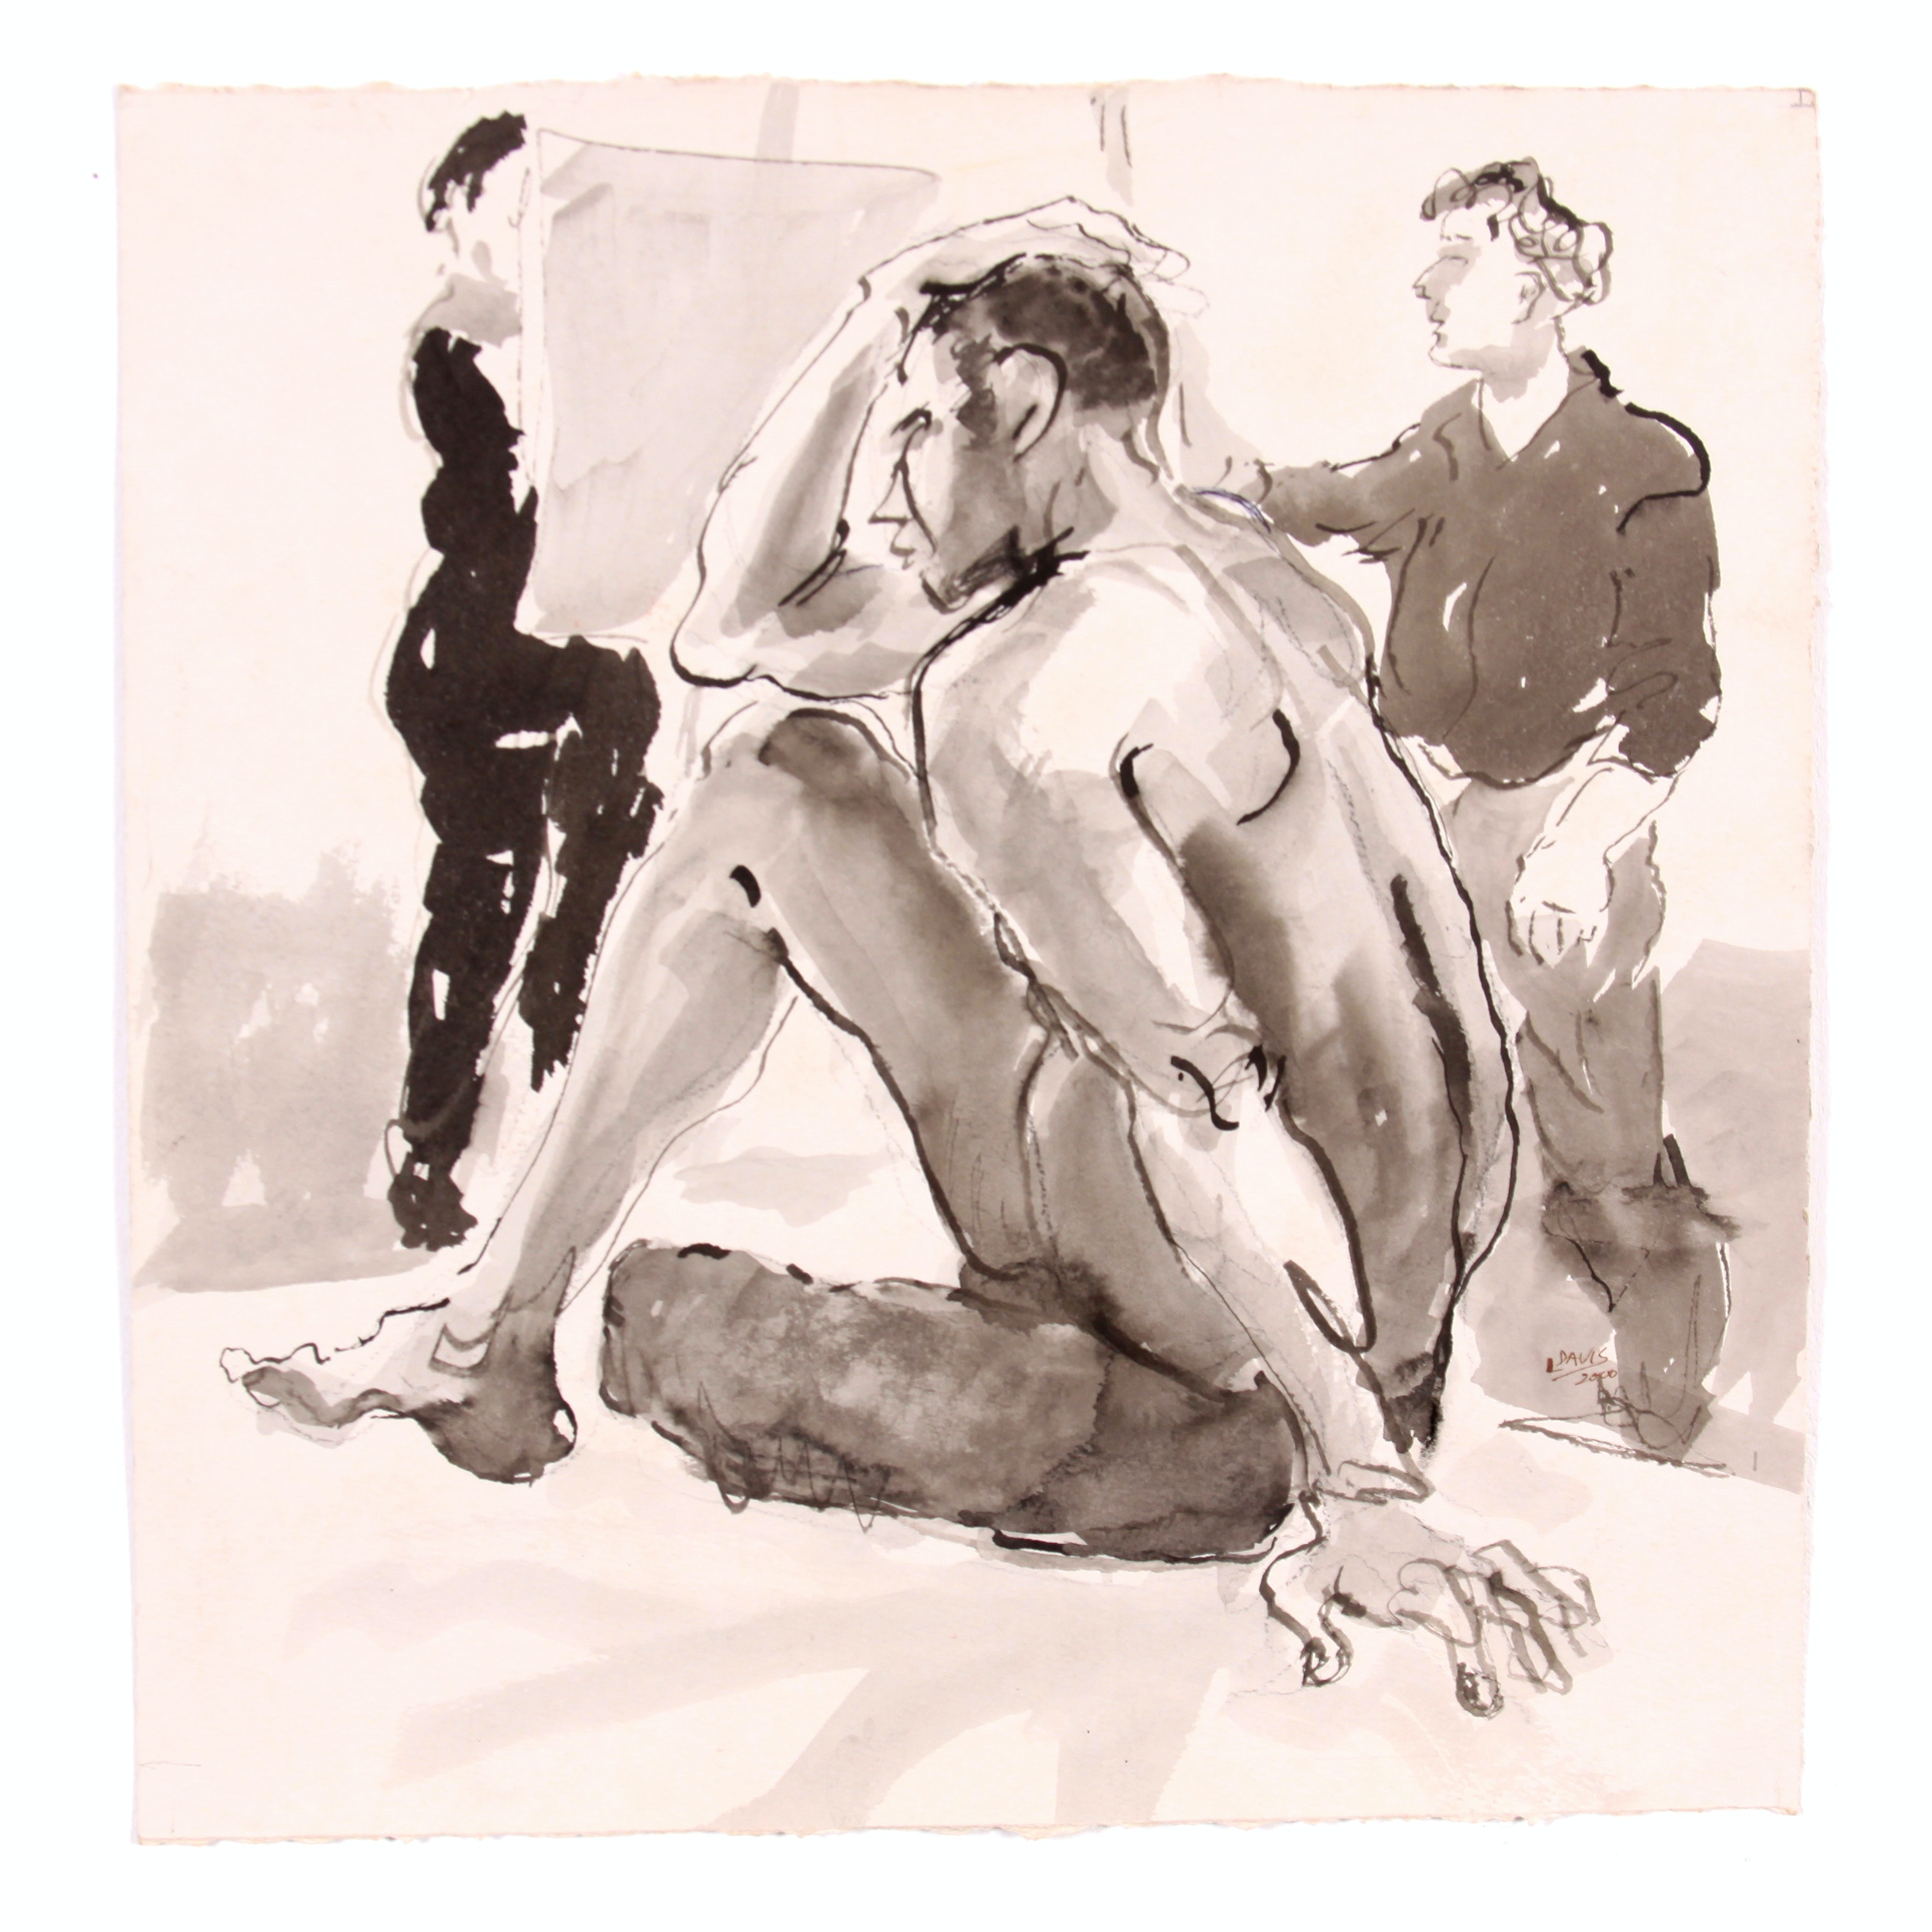 Seated Nude Male Original Watercolor by Lois Davis